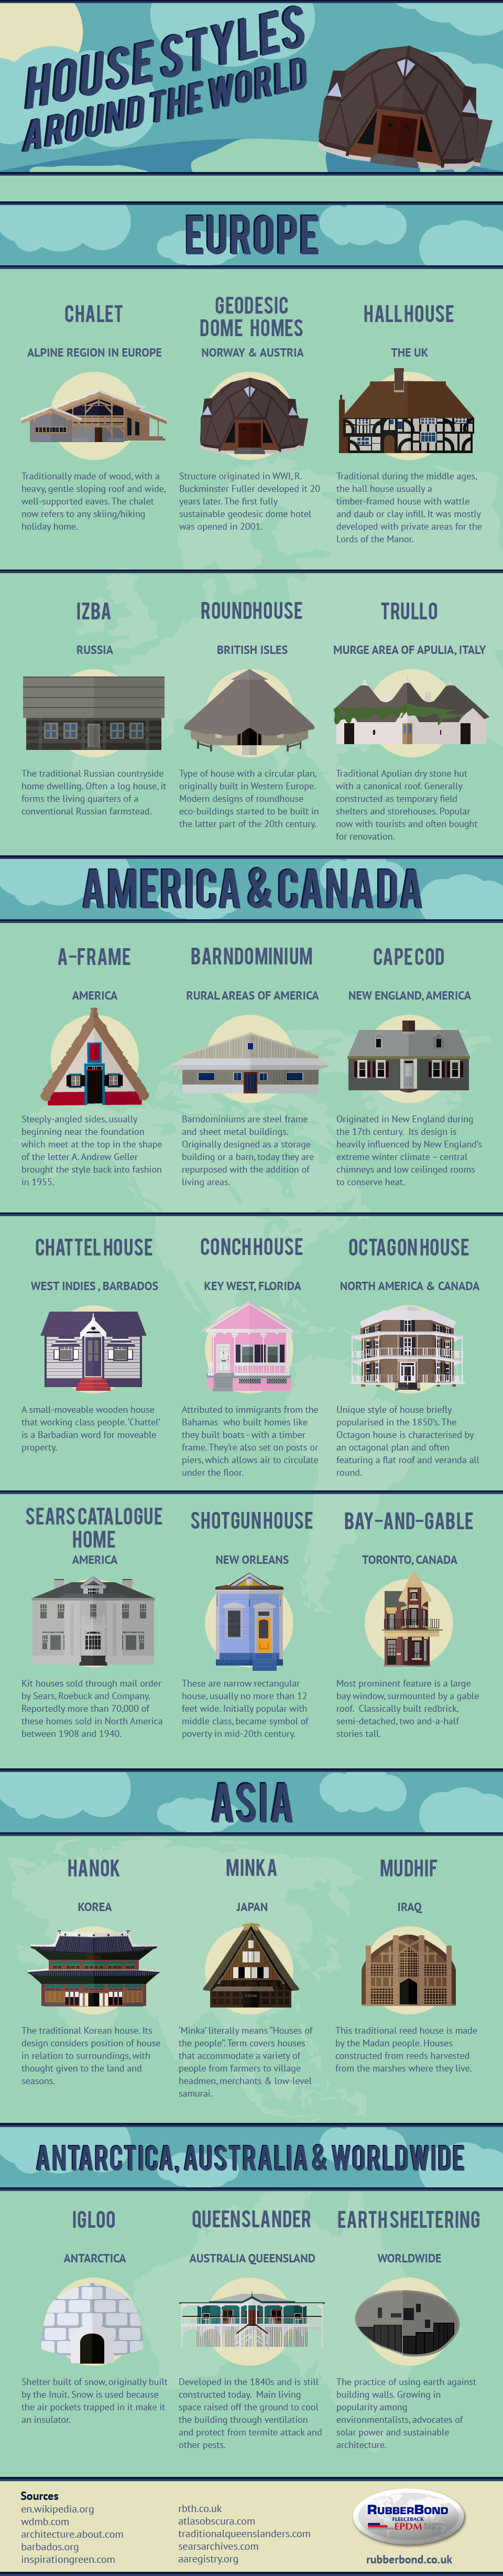 House Styles Around The World